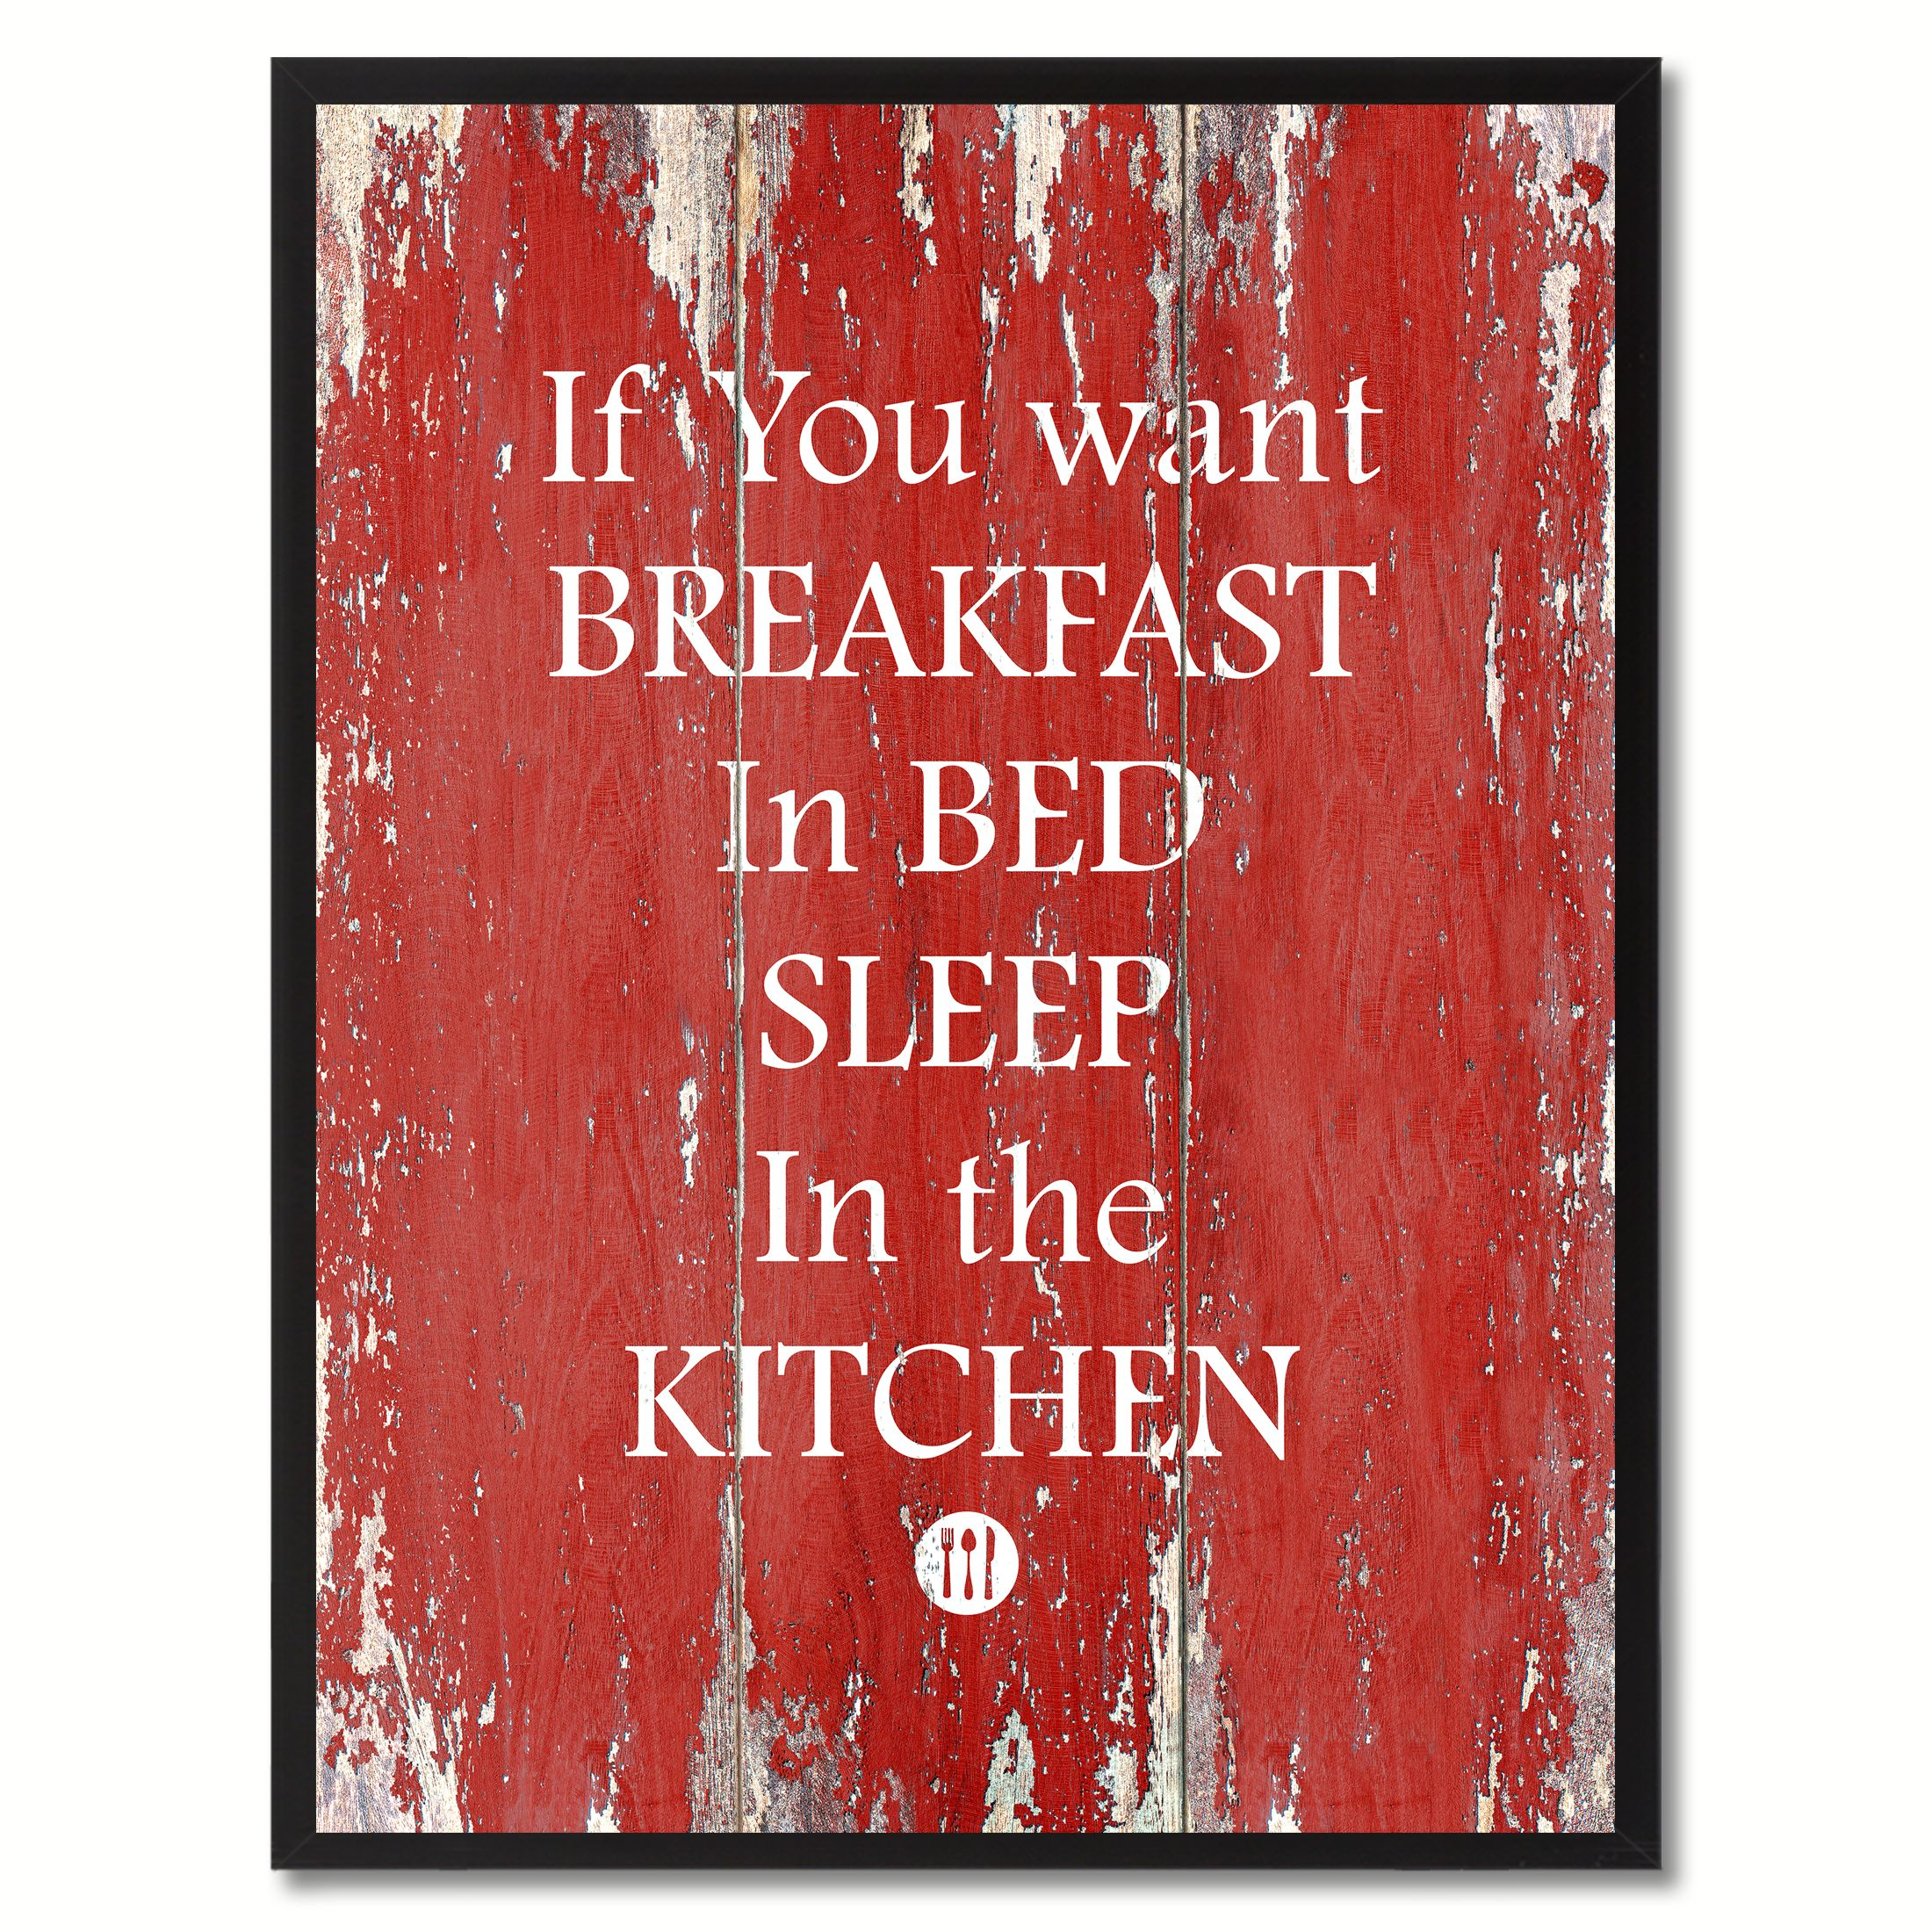 If You Want Breakfast In Bed Sleep In The Kitchen Funny Quote Saying Canvas Print Picture Frame Home Decor Wall Art Gift Ideas Walmart Com Walmart Com